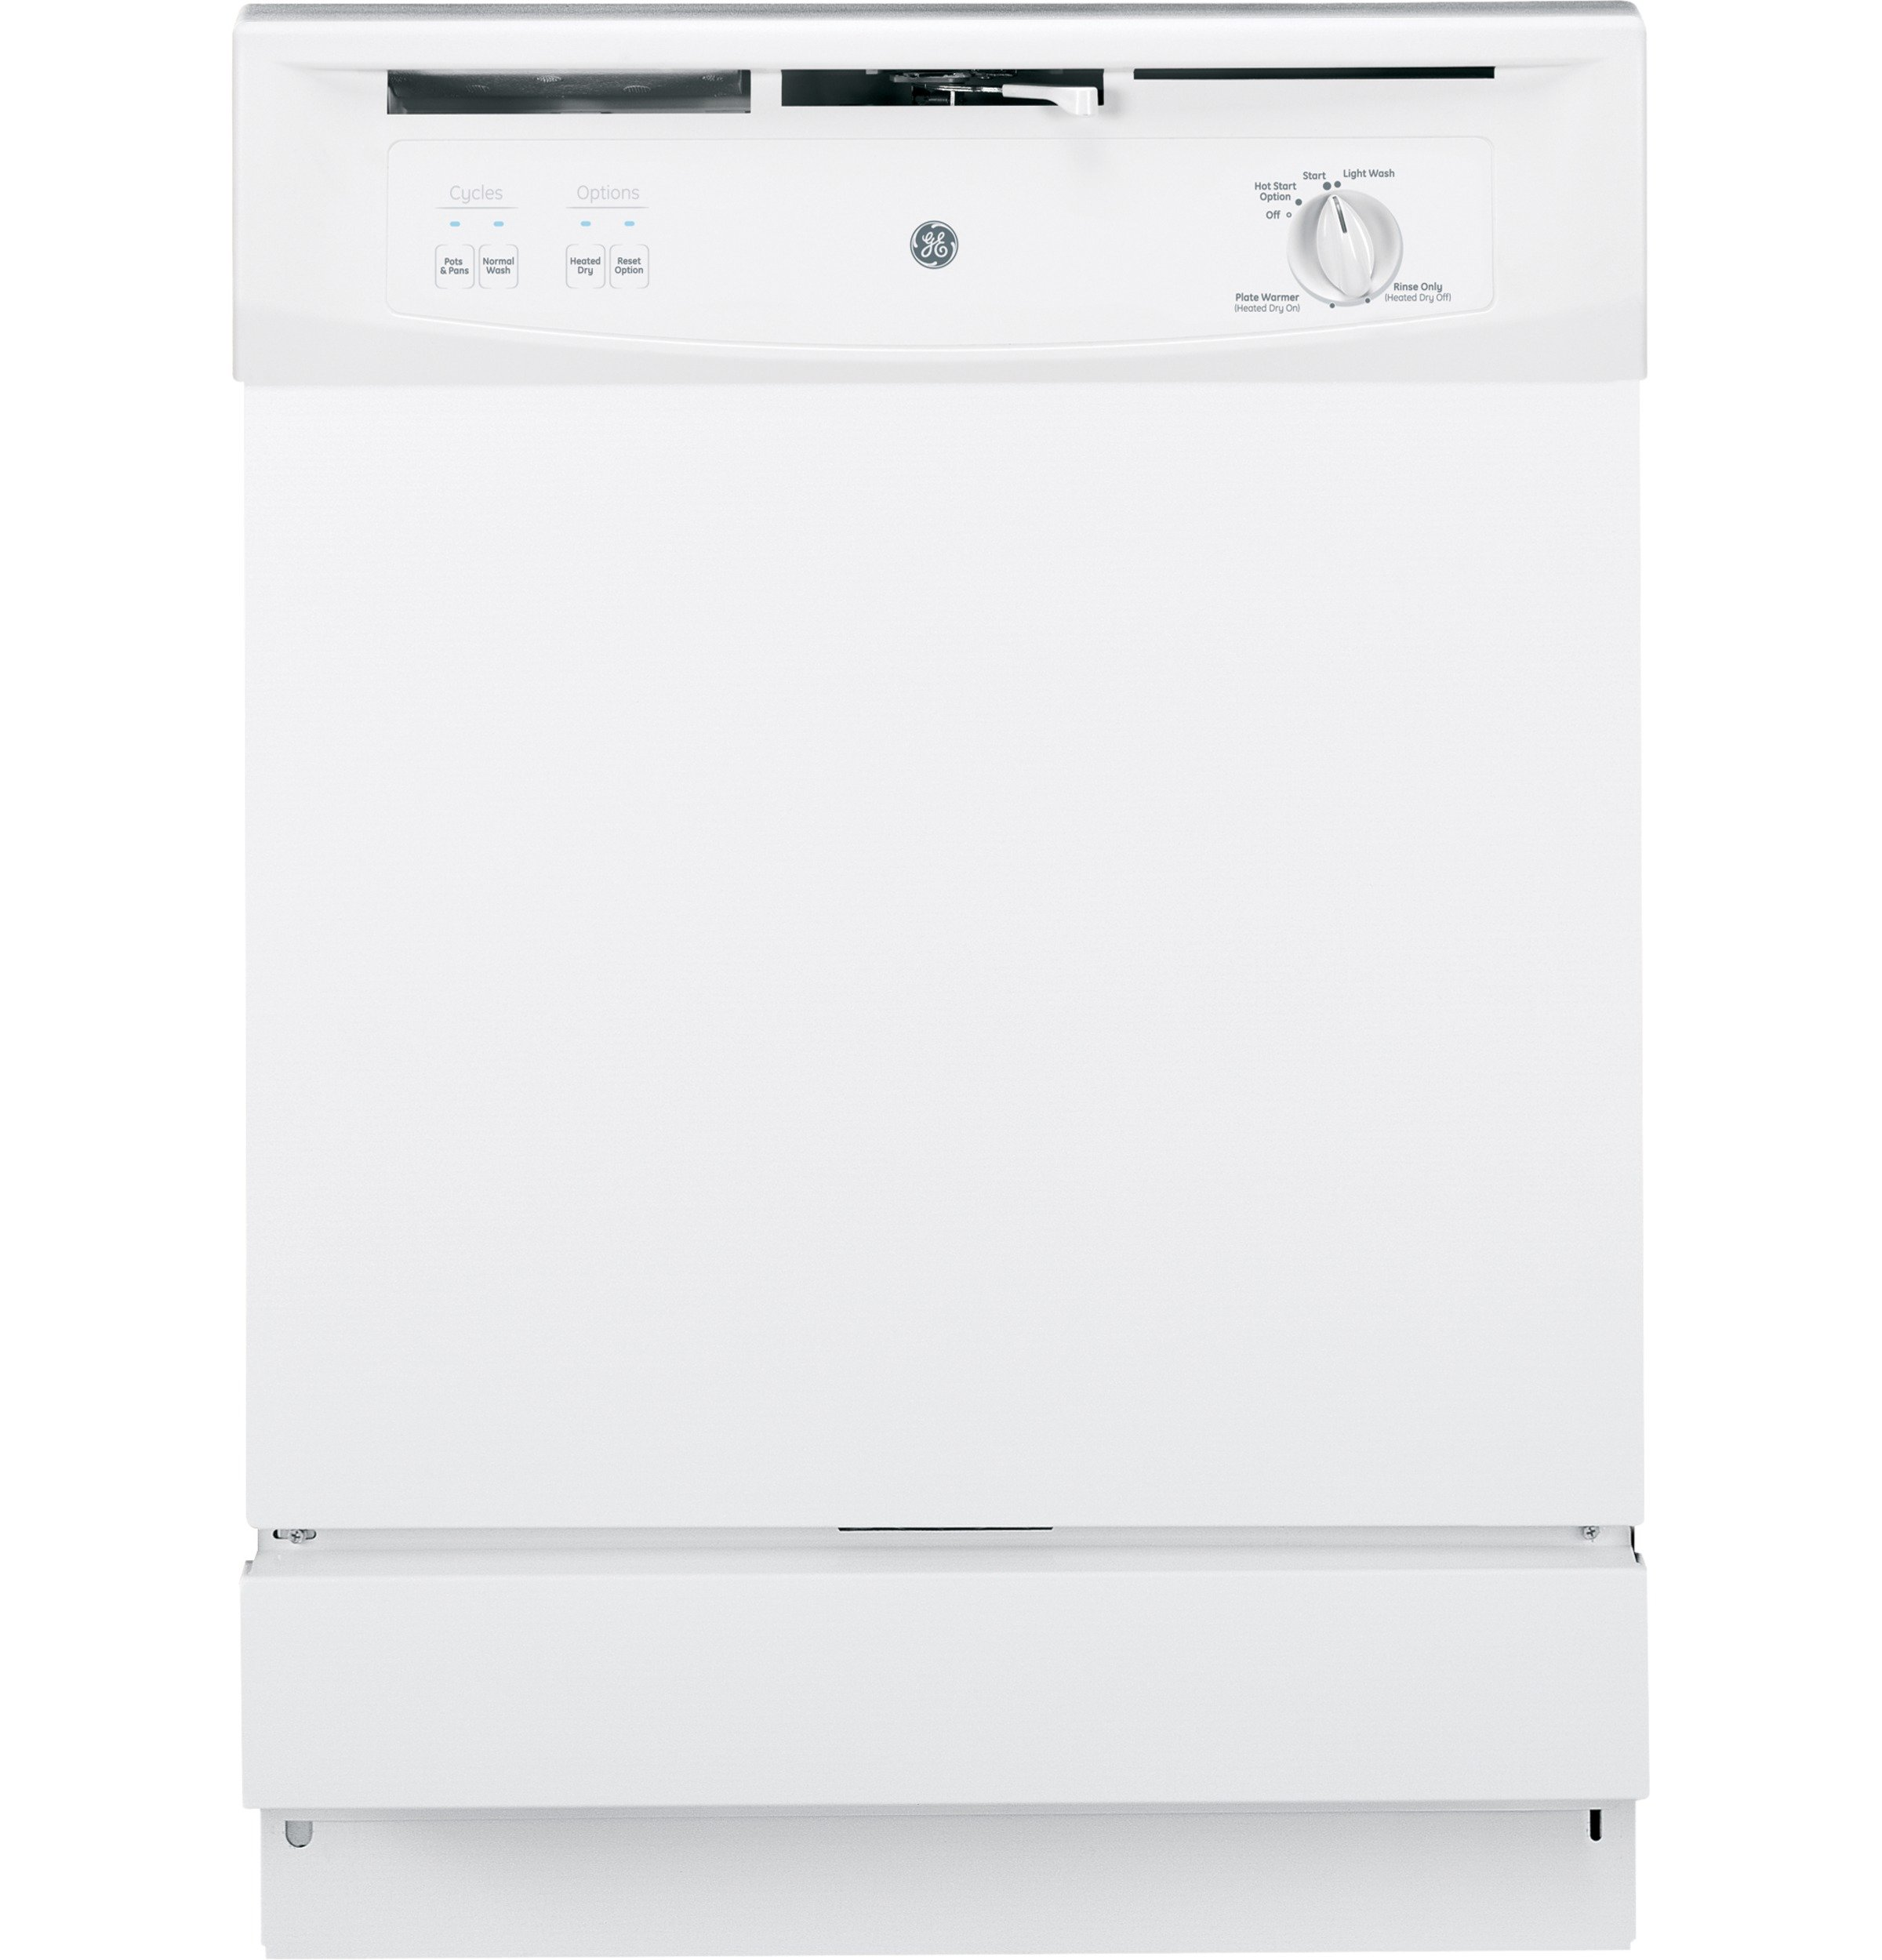 GE GSM2200VWW Spacemaker Under-The-Sink 24-Inch Dishwasher With Touchpad Controls, White, 5 Cycles / 2 Options by GE